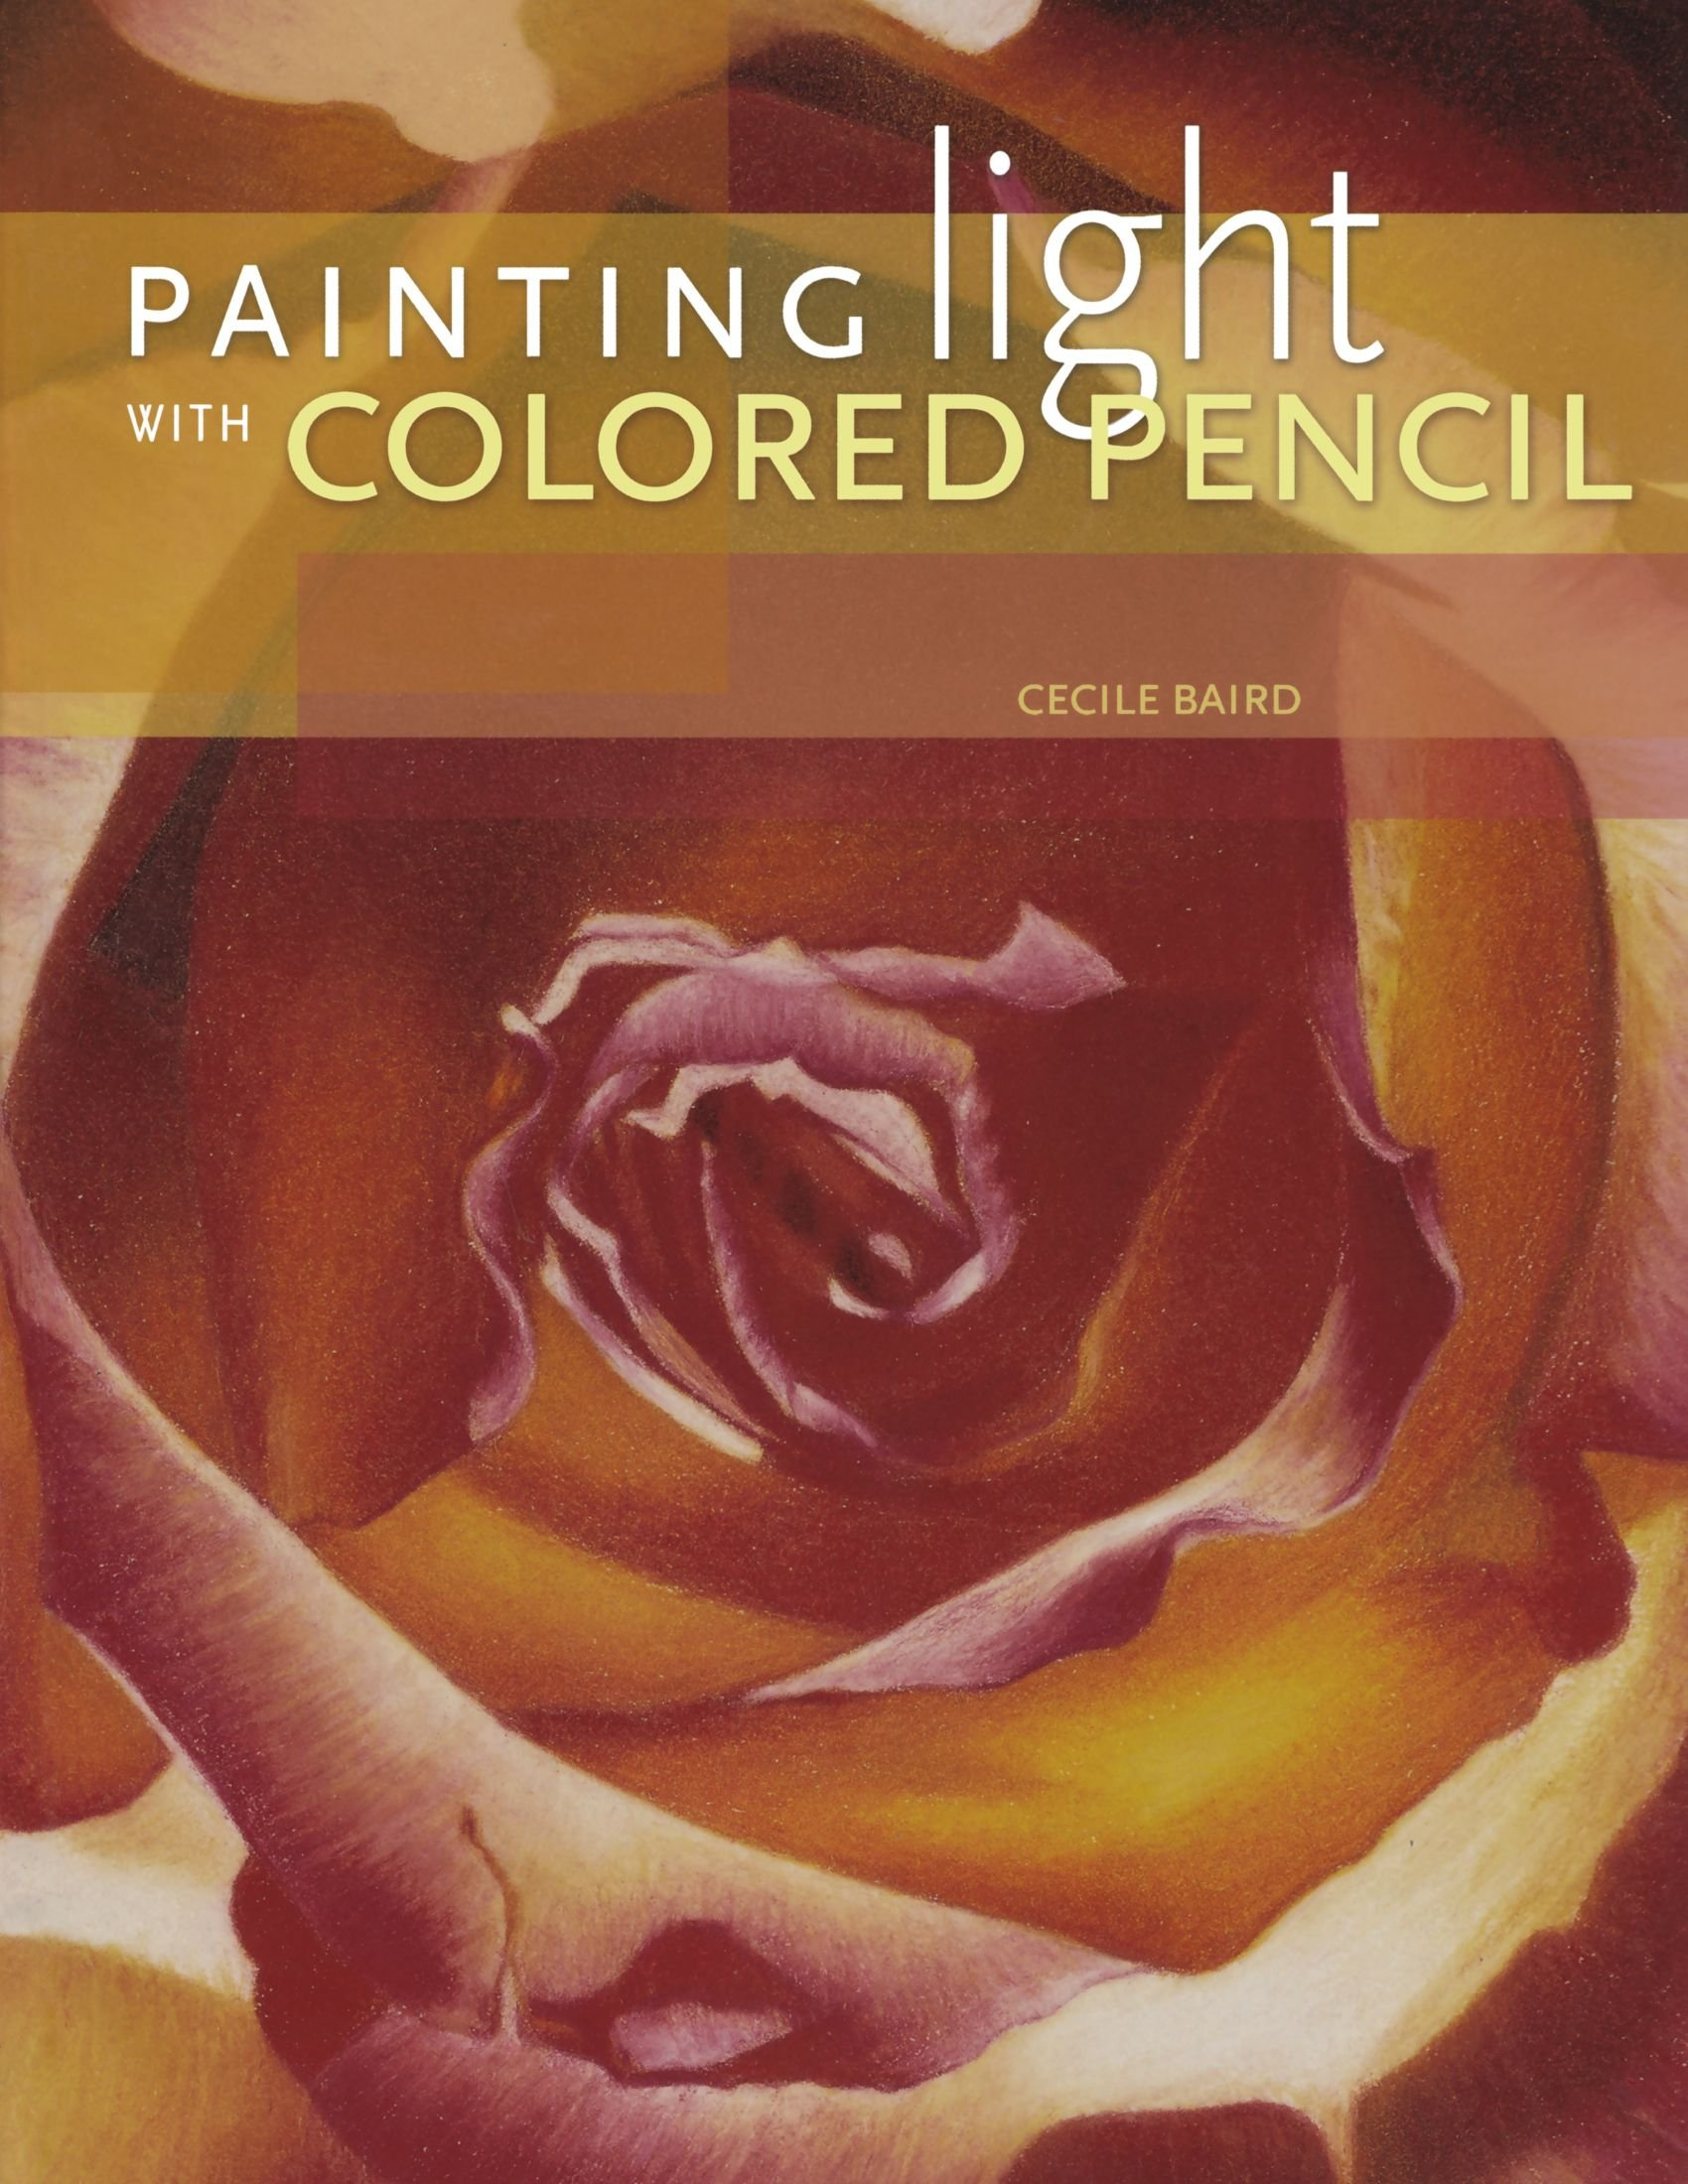 Painting Light With Colored Pencil: Cecile Baird: 9781600611674 ...